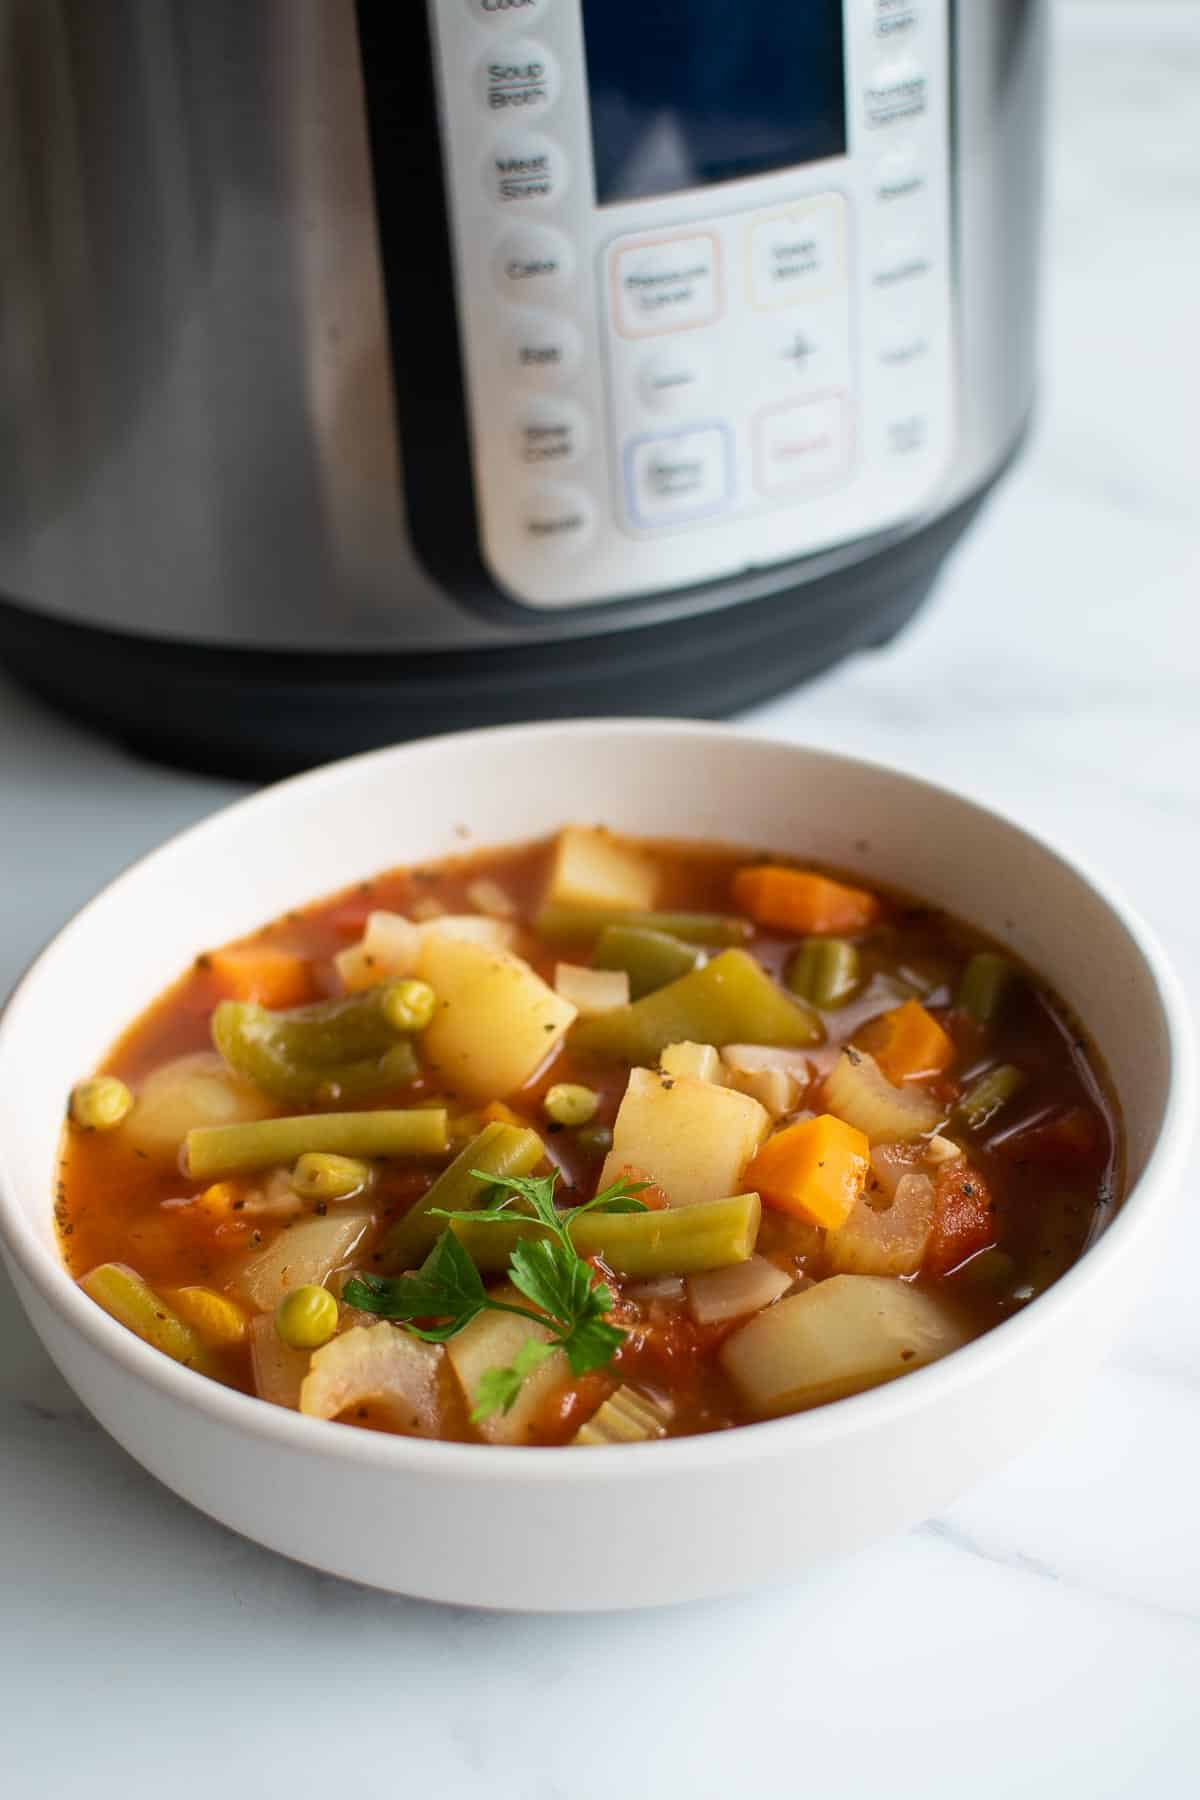 A bowl of vegetable soup in front of Instant Pot.